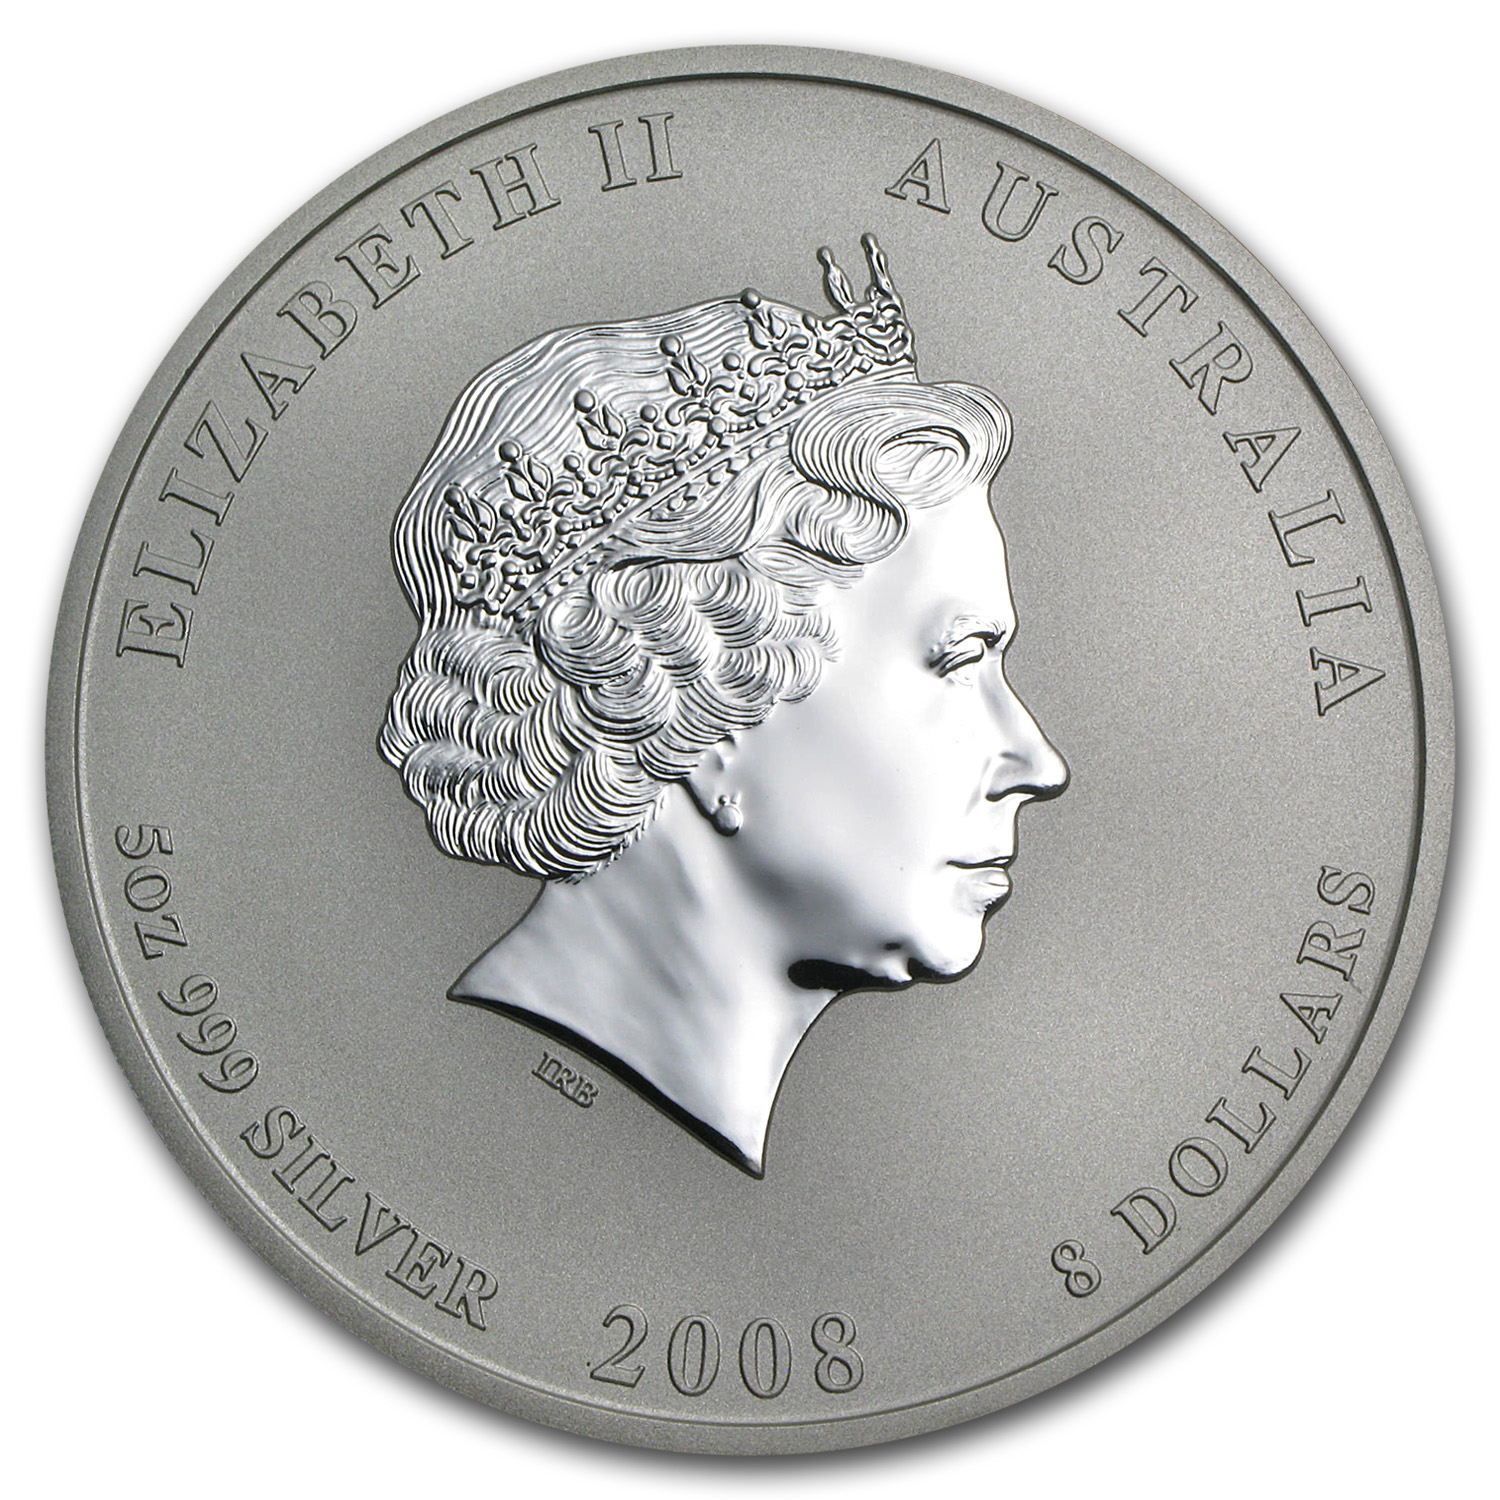 2008 Australia 5 oz Silver Year of the Mouse BU (Series II)